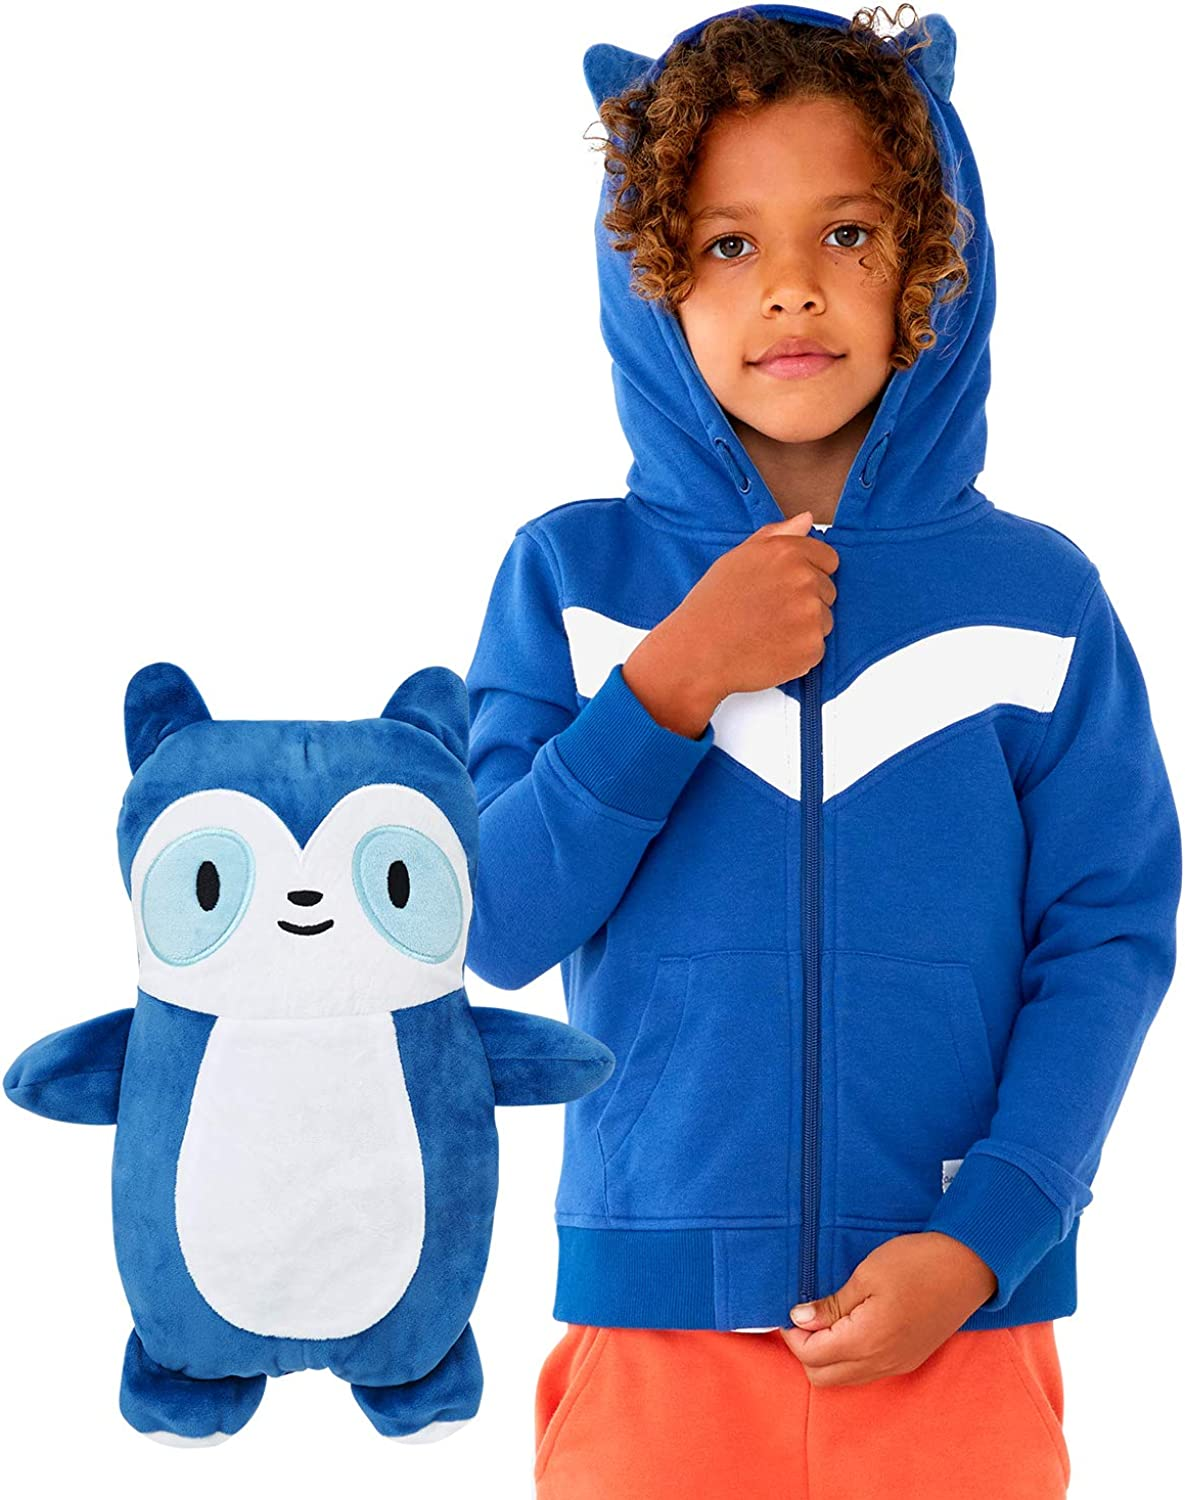 Cubcoats Kids Transforming 2 in 1 Sweater Soft Max 51% OFF Jacket Hoodie 4 years warranty and